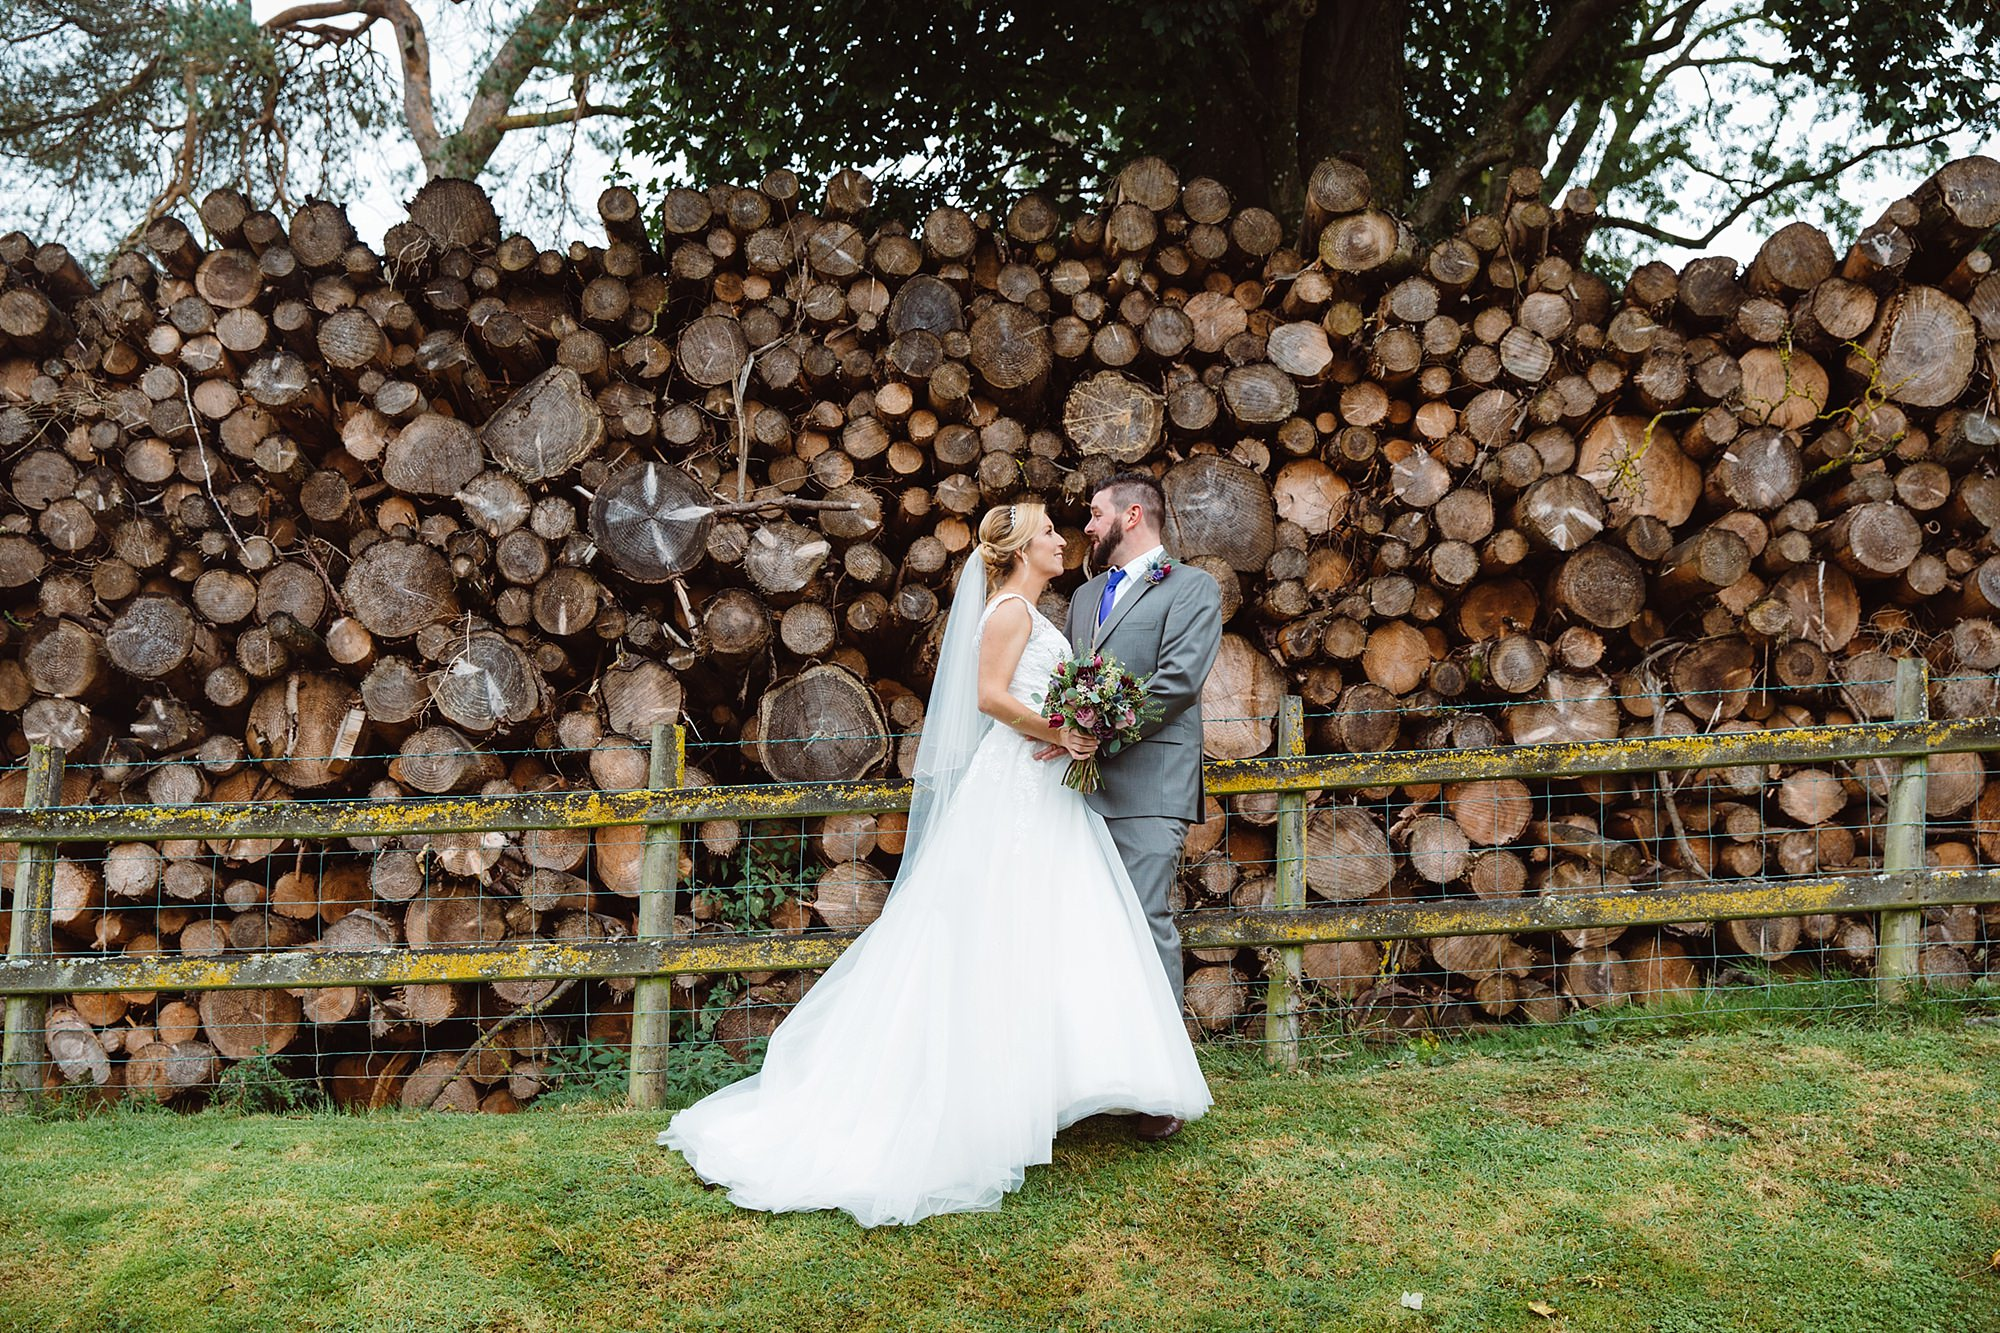 A fun wedding portrait of bride and groom in front of logs at Plas Isaf